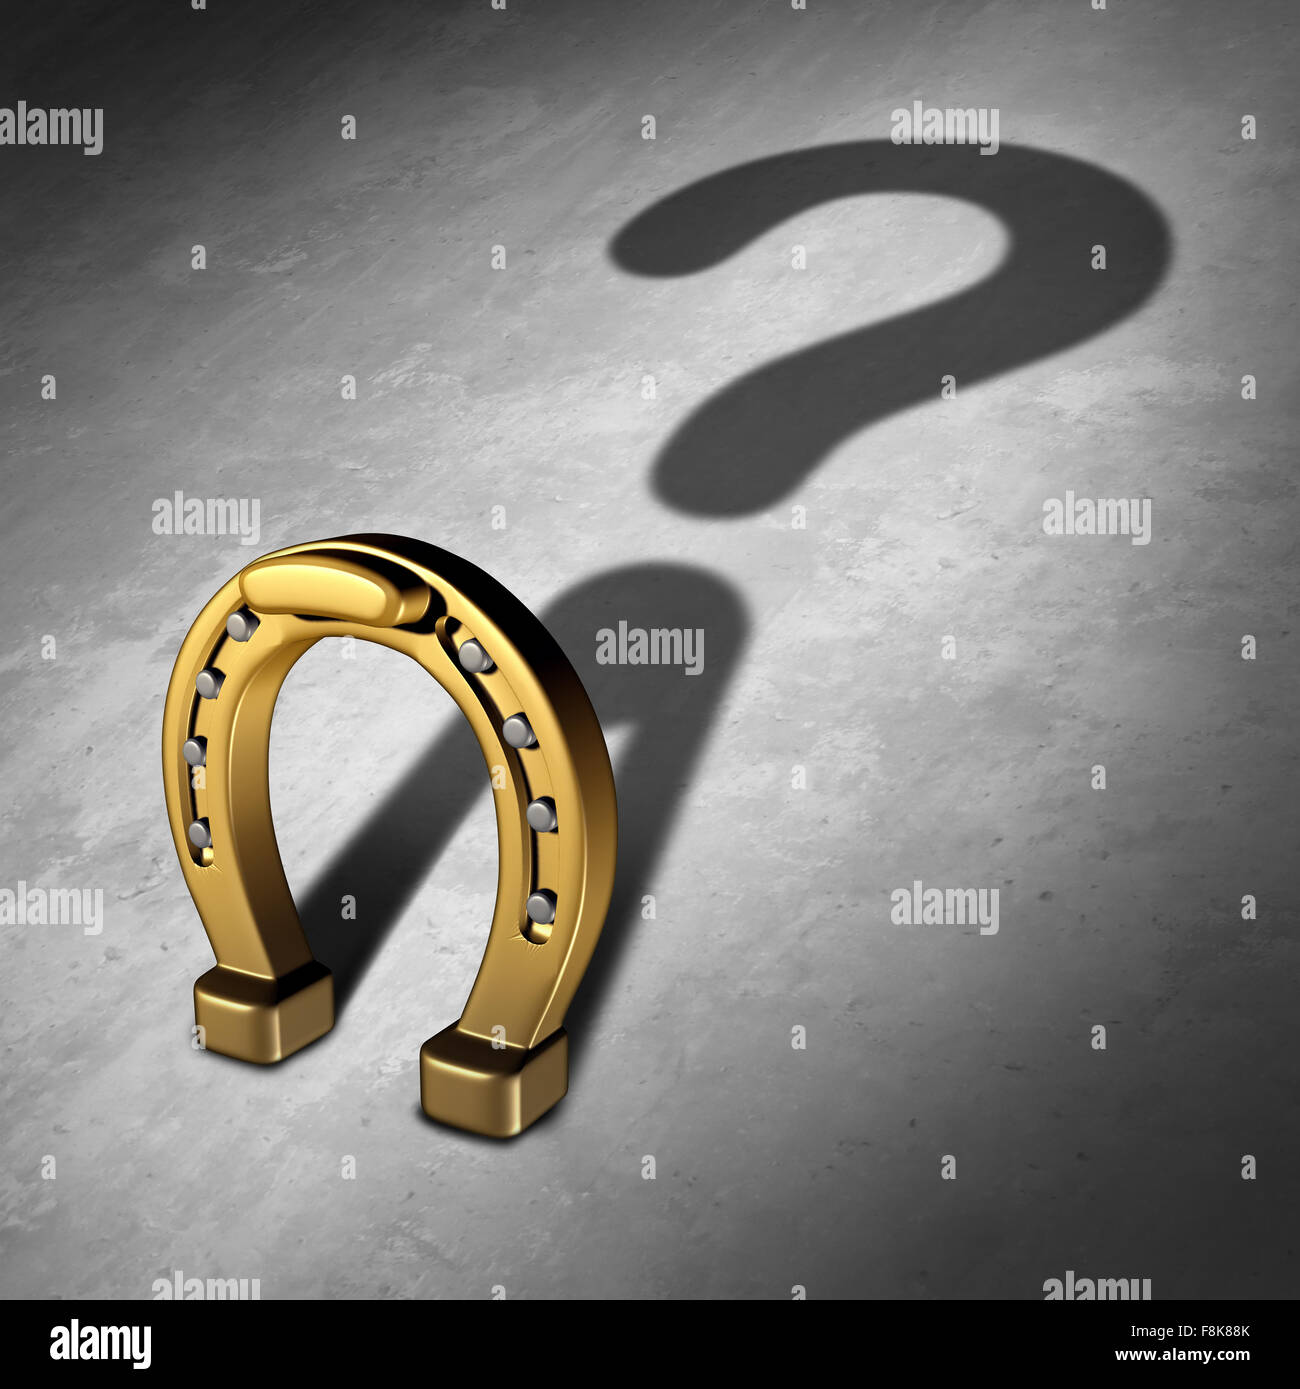 Chance question and luck questions as a horseshoe icon or horse shoe odds symbol as a golden metal lucky charm object - Stock Image